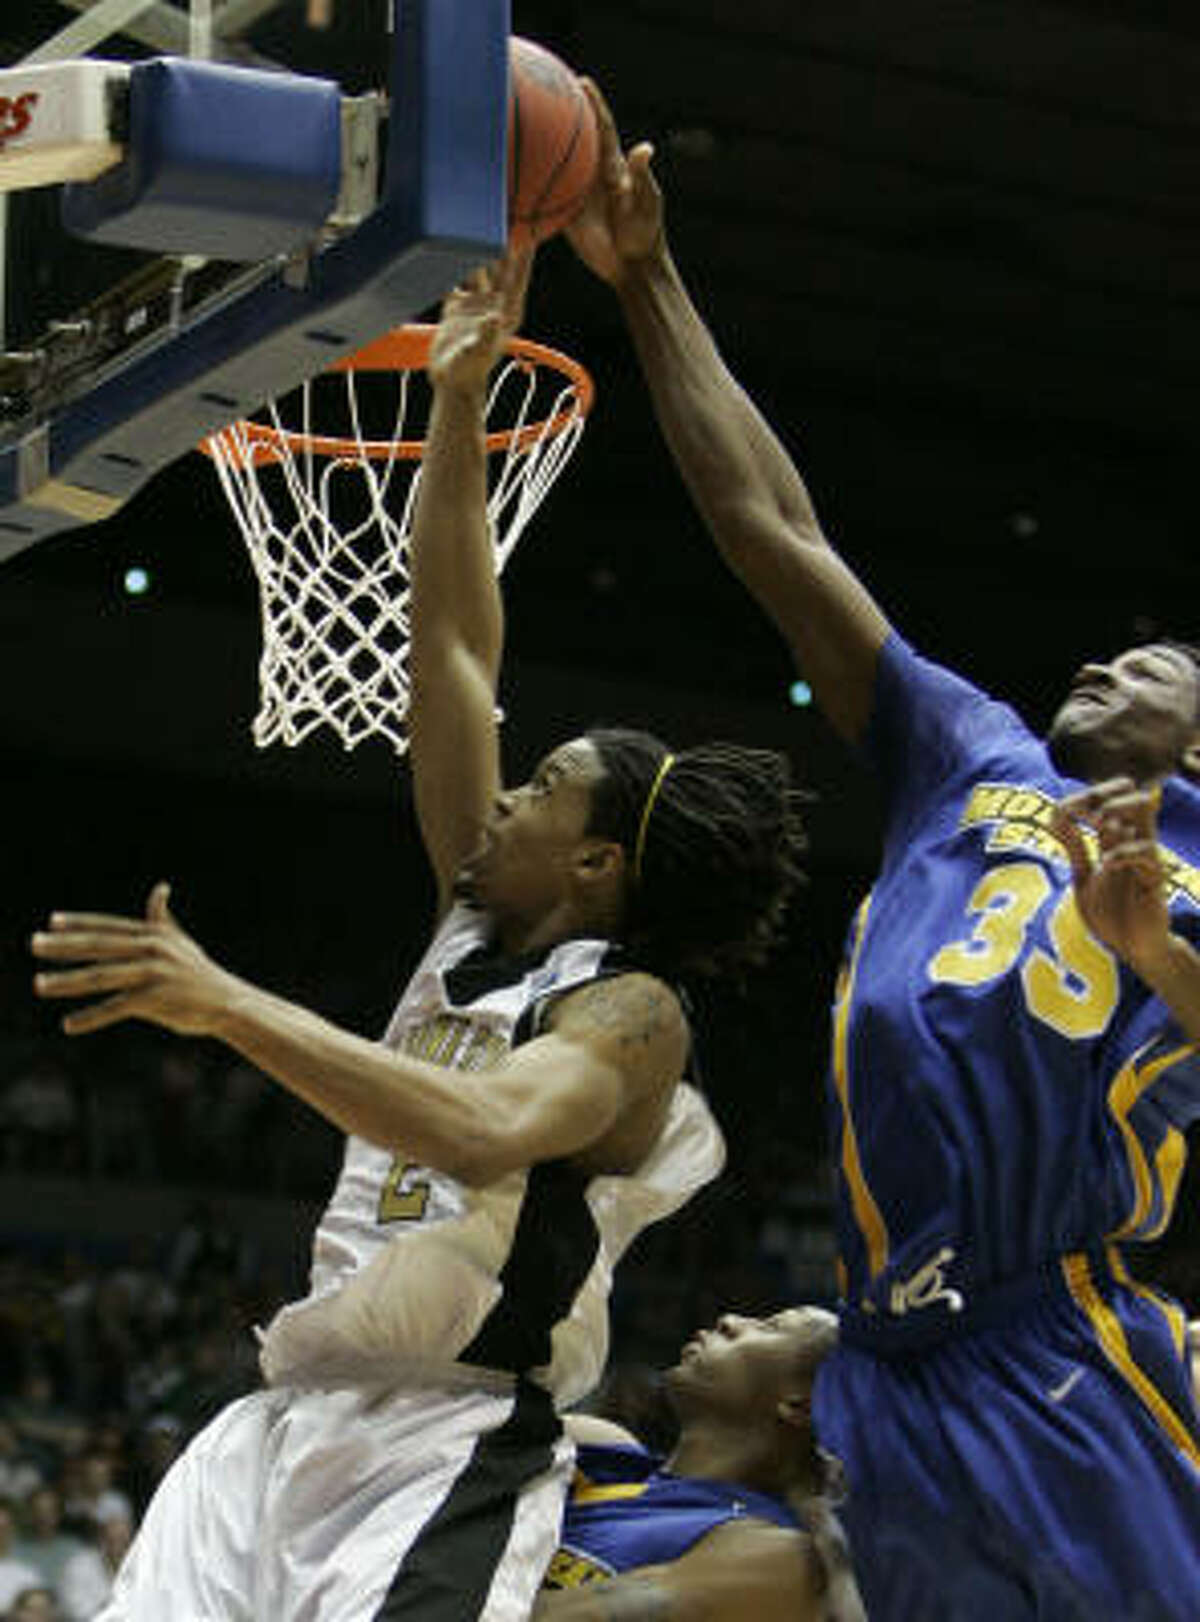 Opening Round Game: Morehead State 58, Alabama State 43. Morehead State forward Kenneth Faried (35) blocks a shot by Alabama State guard Andrew Hayles (2) in the first half.